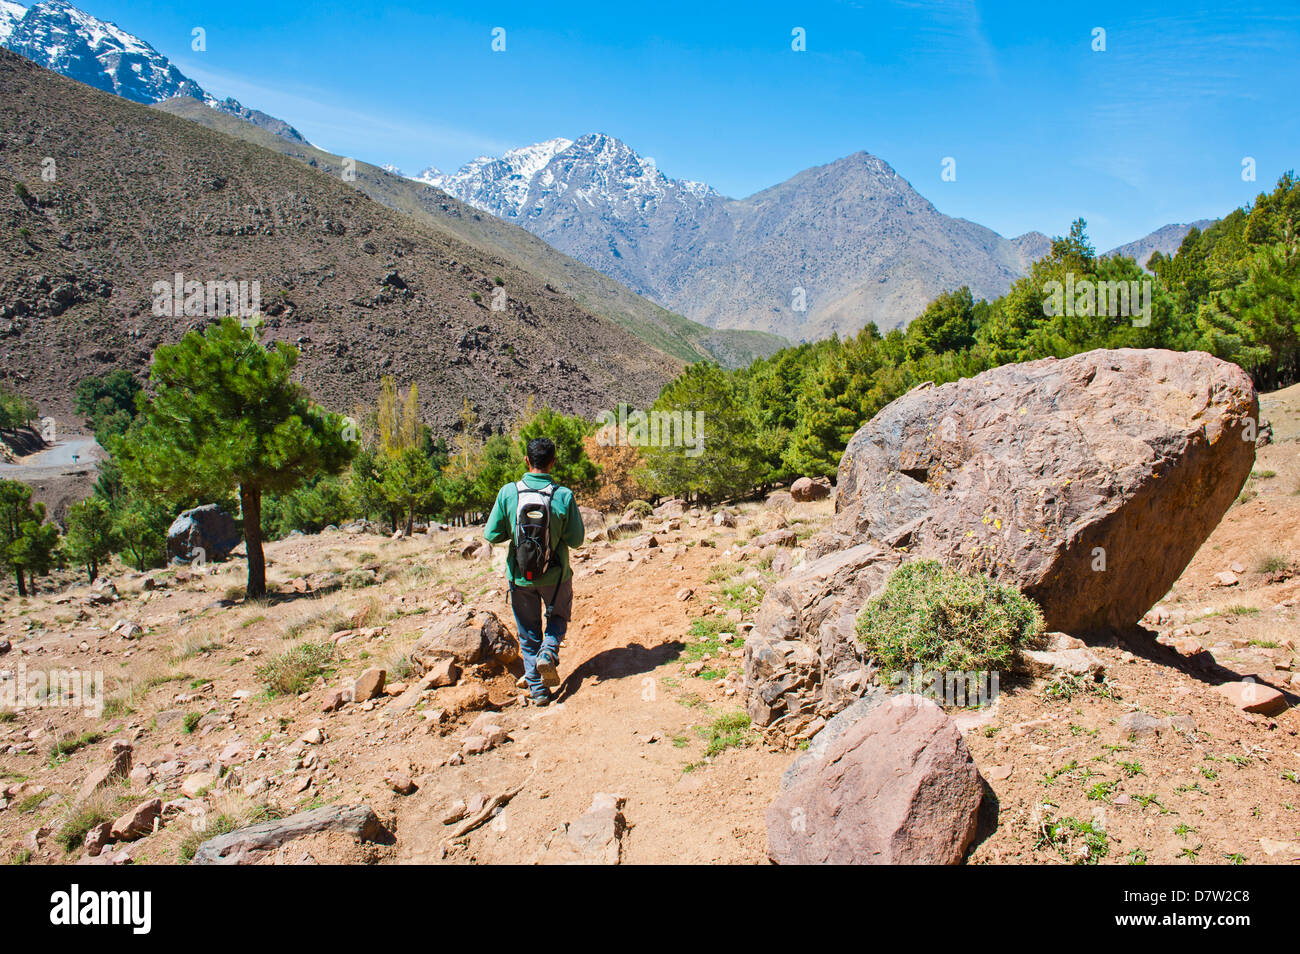 Tour guide trekking in the Imlil valley, on route from Tizi n Tamatert into Imlil, High Atlas Mountains, Morocco, - Stock Image